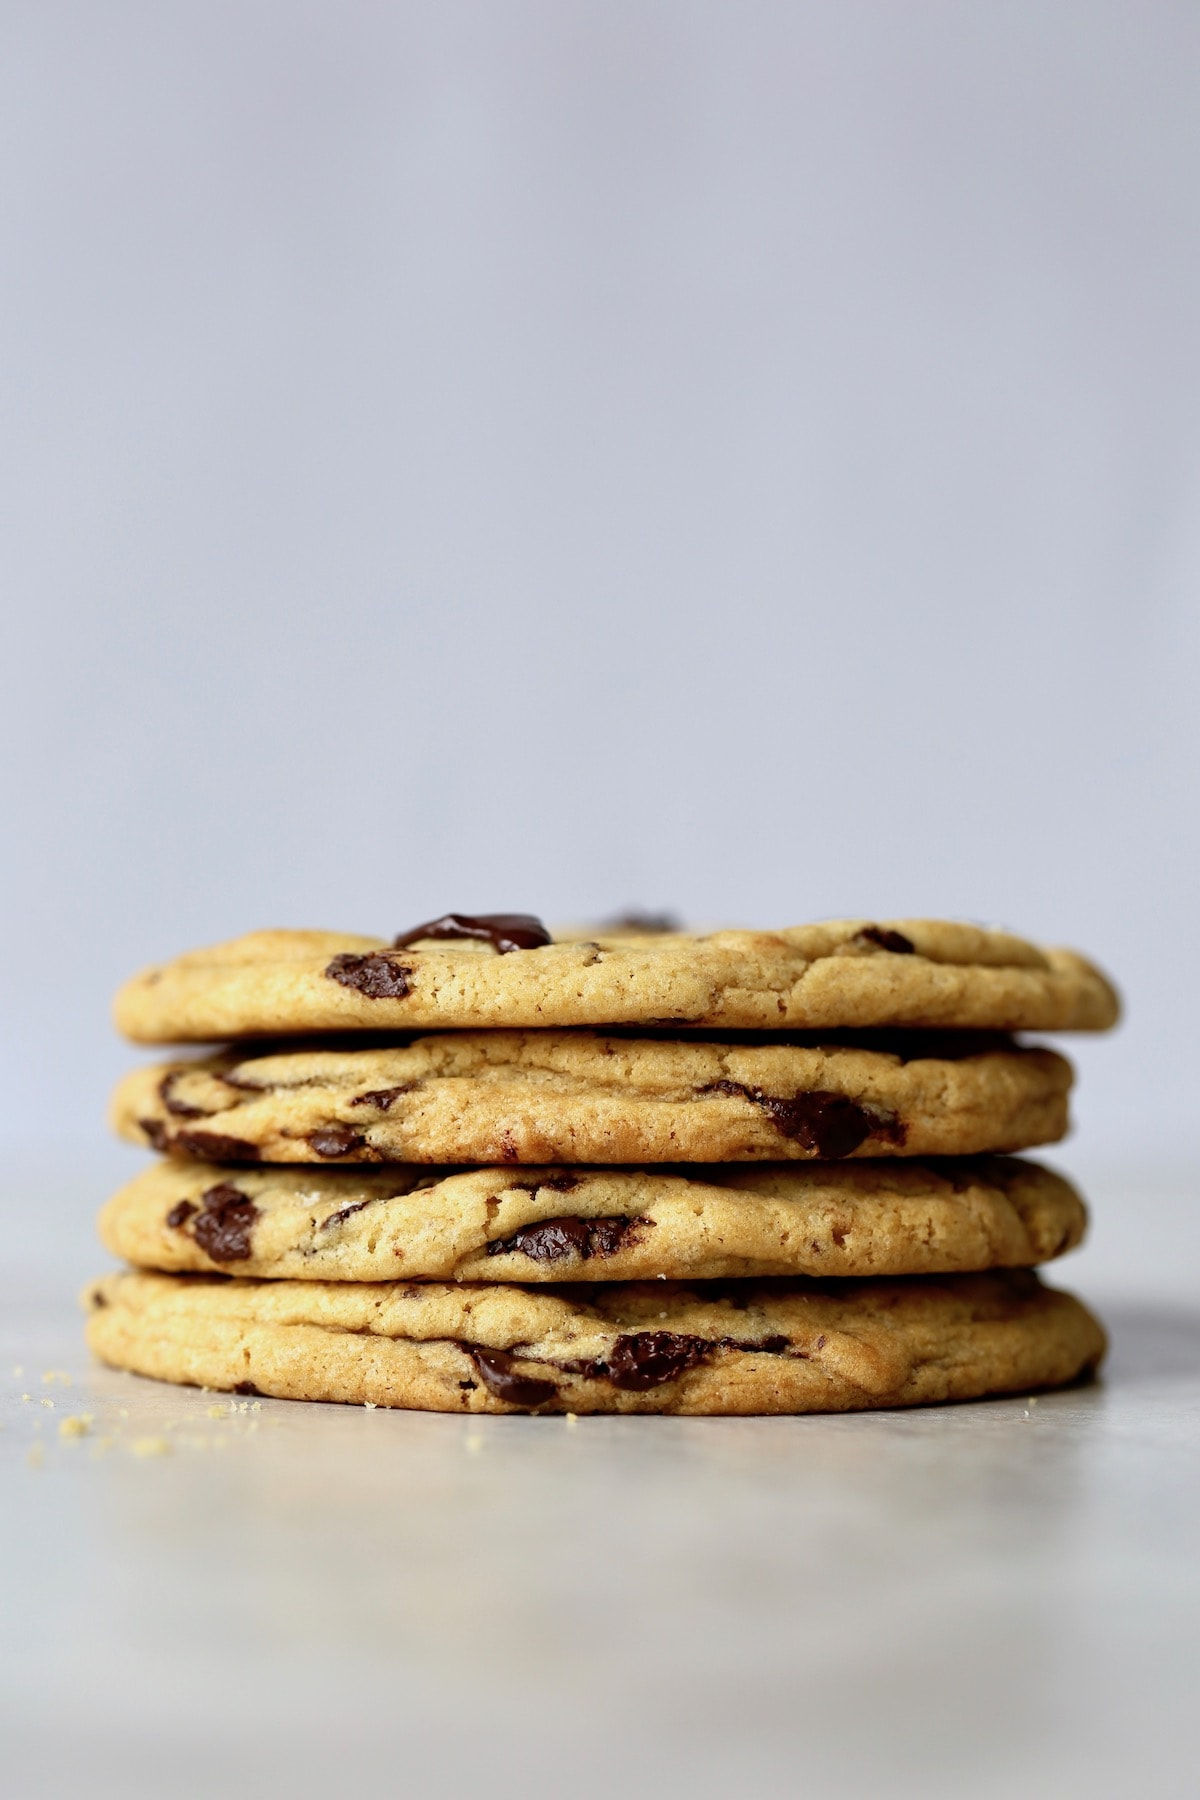 four bakery style chocolate chip cookies stacked on each other